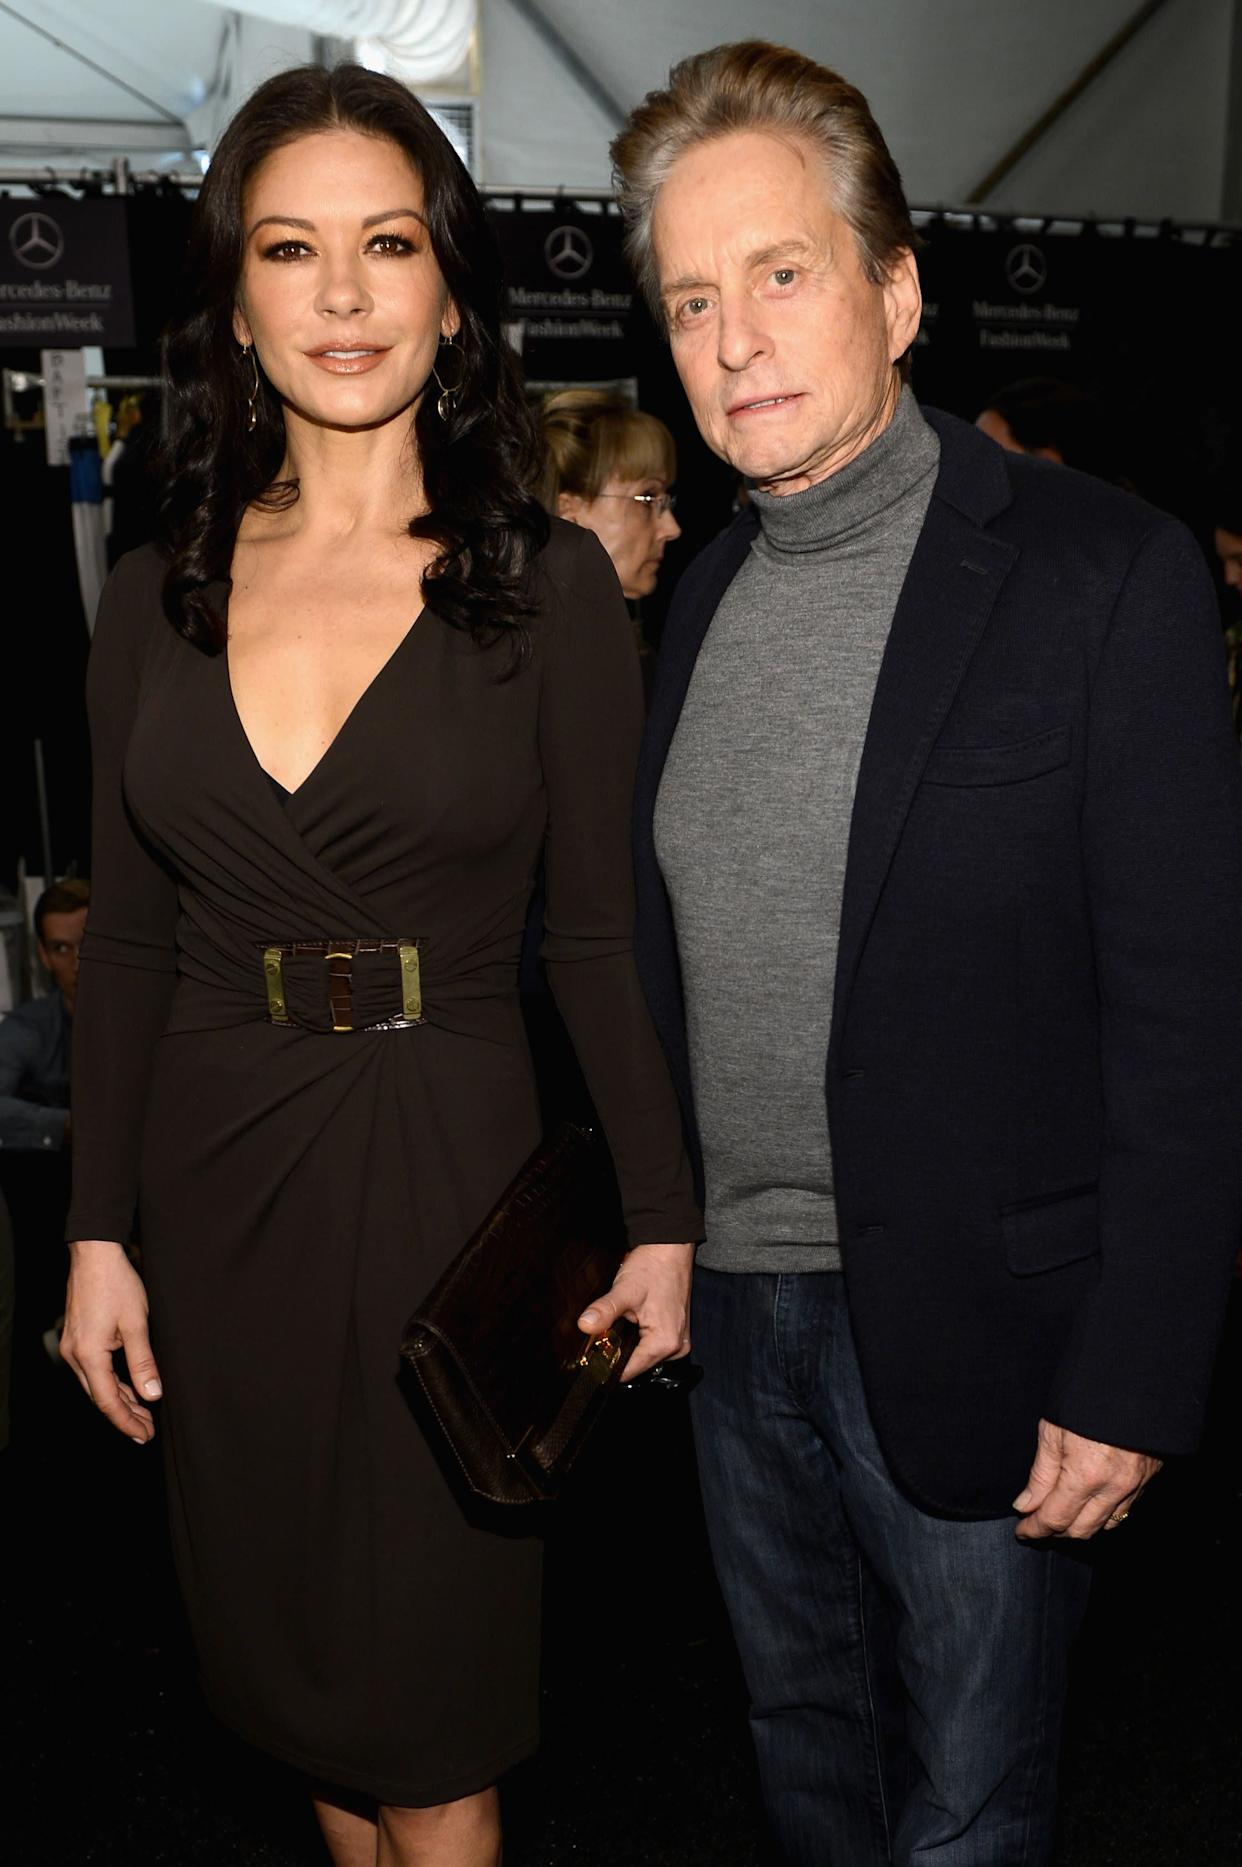 """""""God bless her, [Catherine Zeta-Jones] likes older guys,""""<a href=""""http://www.huffingtonpost.com/2010/01/22/michael-douglas-thank-goo_n_432716.html"""" rel=""""nofollow noopener"""" target=""""_blank"""" data-ylk=""""slk:Douglas told AARP"""" class=""""link rapid-noclick-resp""""> Douglas told AARP</a>. """"And some wonderful enhancements have happened in the last few years -- Viagra, Cialis -- that can make us all feel younger."""""""